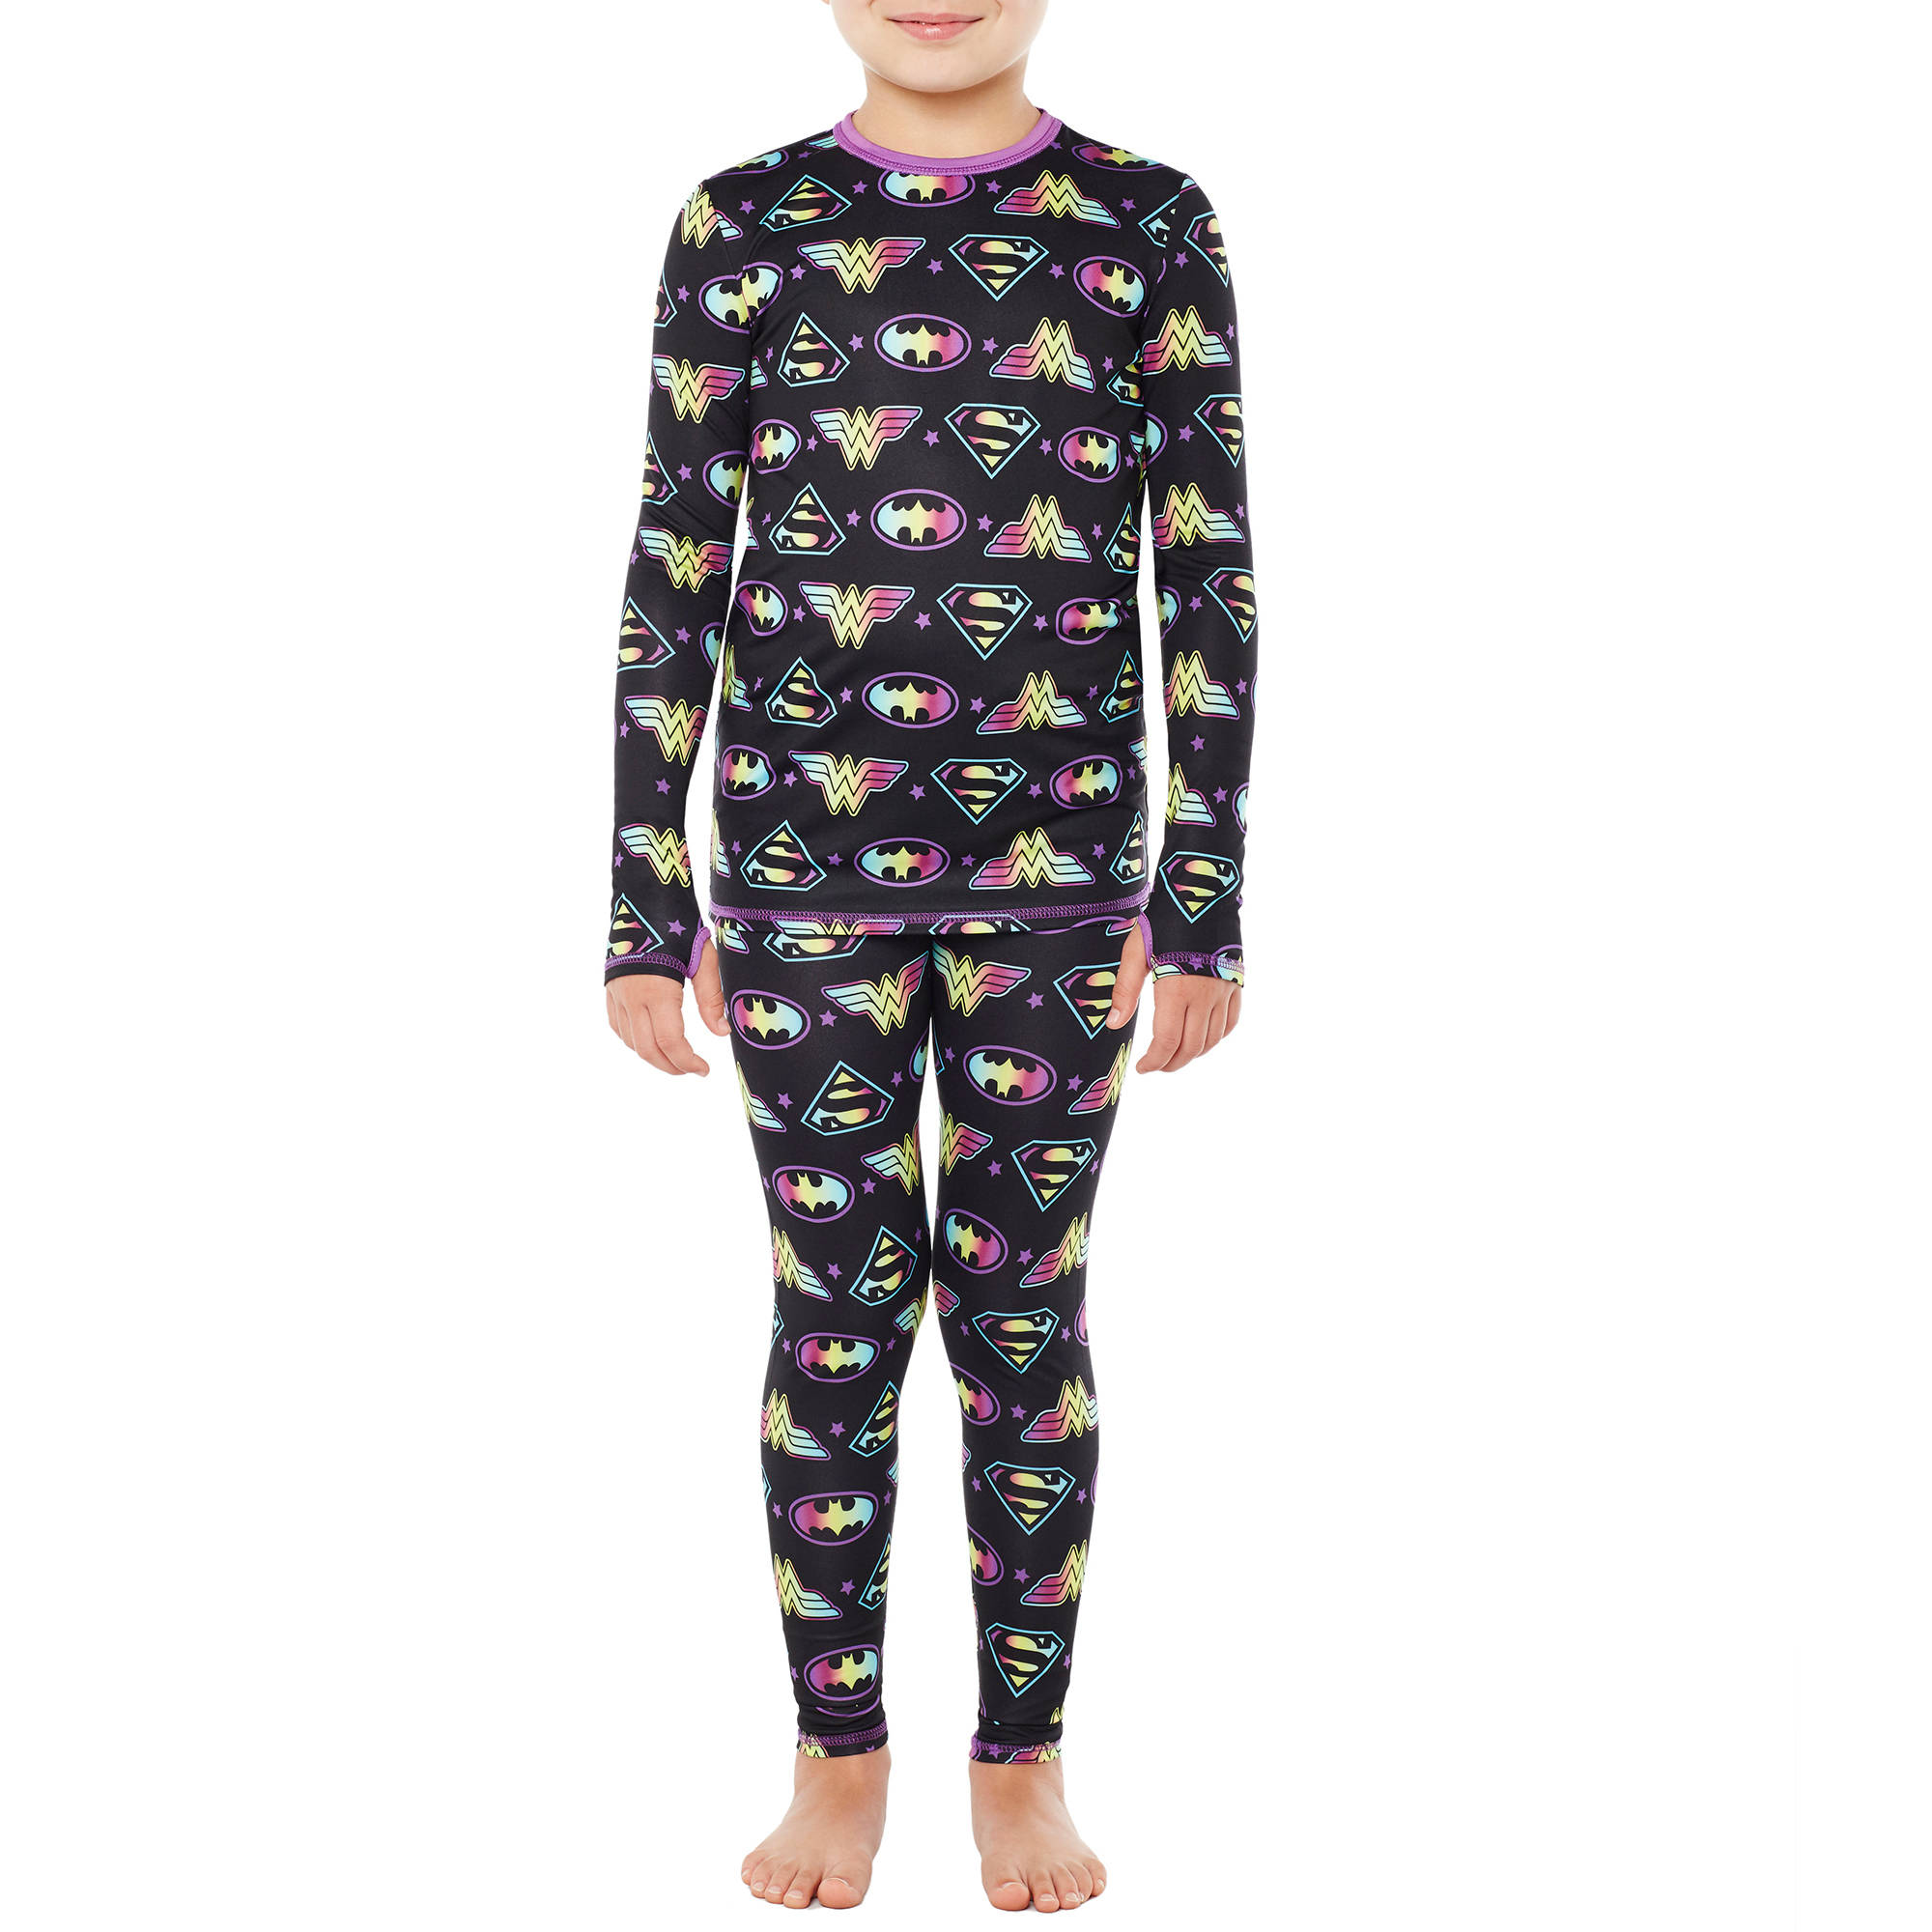 Climateright By Cuddl Duds Overall Printed Girls Licensed Poly Spandex Thermal Set with Inseam Thumbholes for Easy Layering